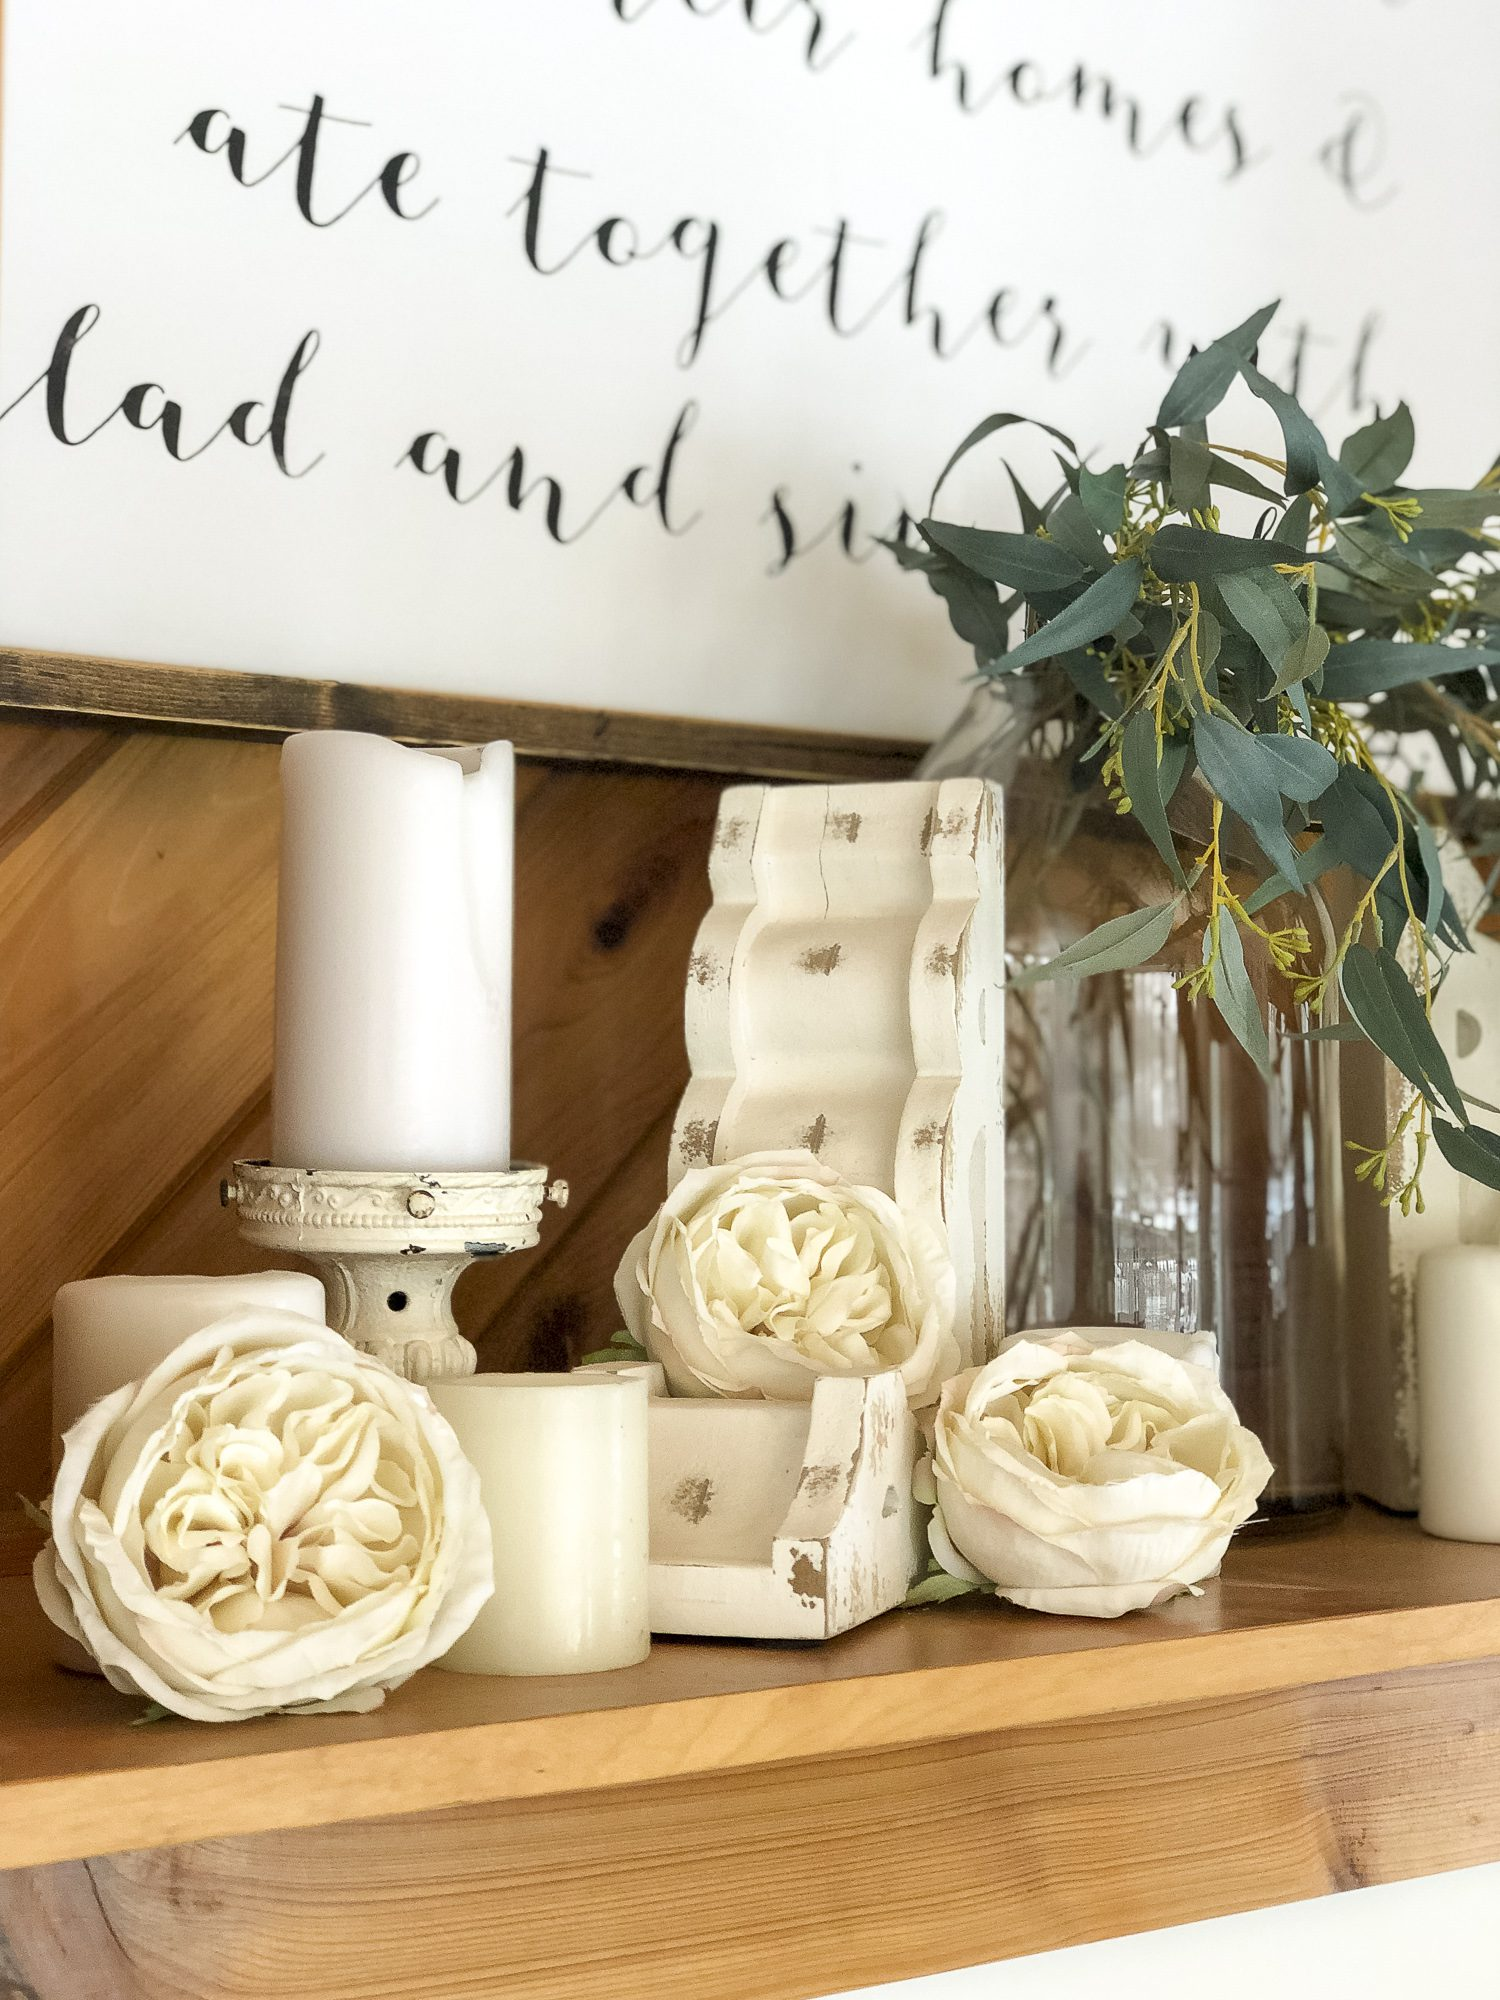 Are you trying to arrange faux flowers without having to stick to the traditional vase arrangement? Read 5 non-traditional ways to arrange faux flowers today! #fromhousetohaven #fauxflowers #artificialflowers